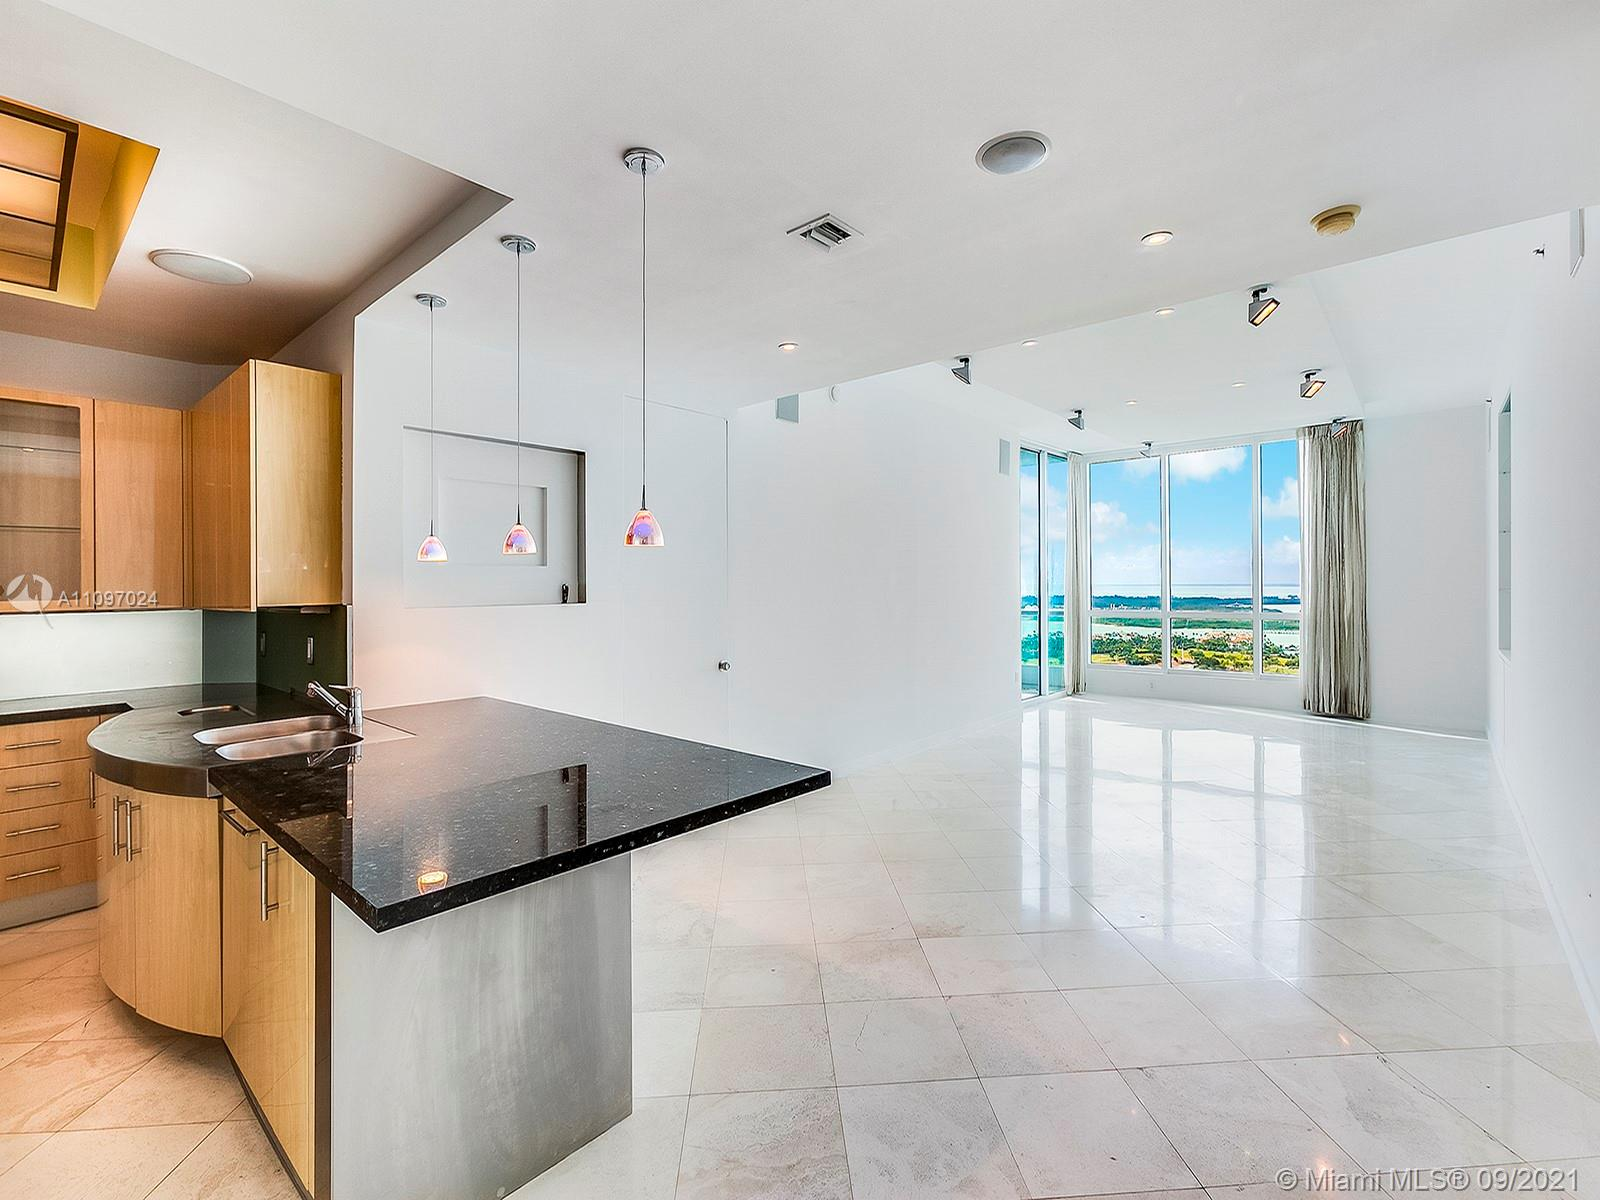 100 S Pointe Dr, Unit #3102 Luxury Real Estate